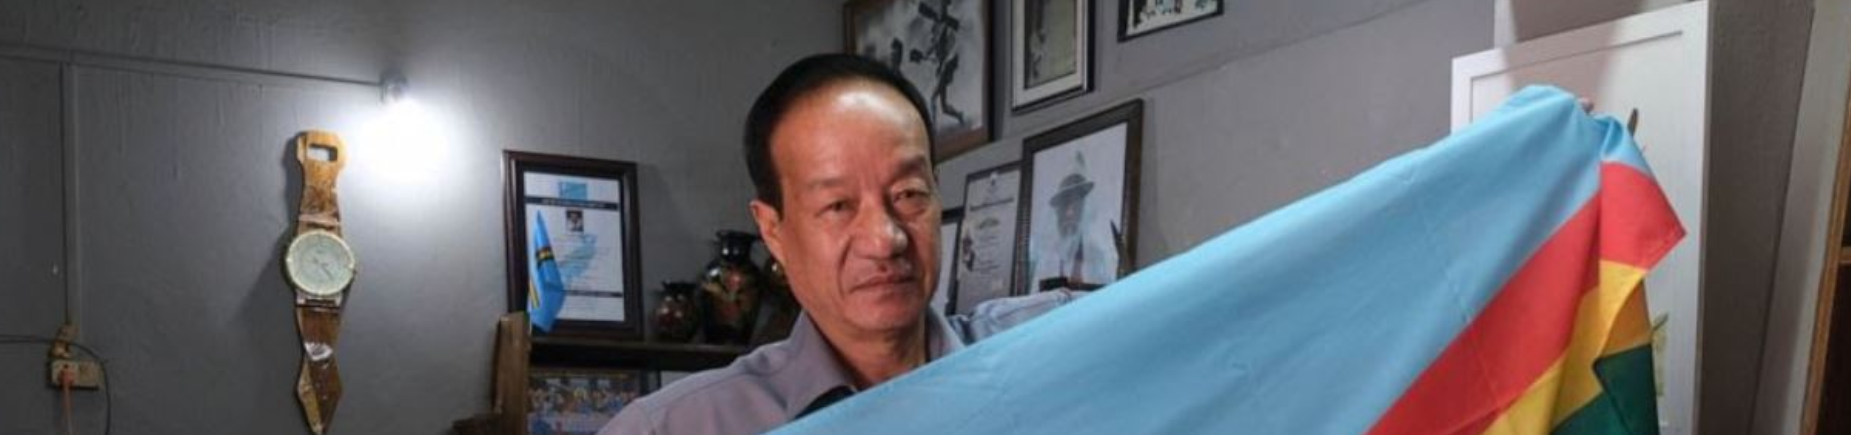 """Naga Activist Krome Stopped At Airport From Flying Abroad: """"Brought Back Bad Memories"""""""